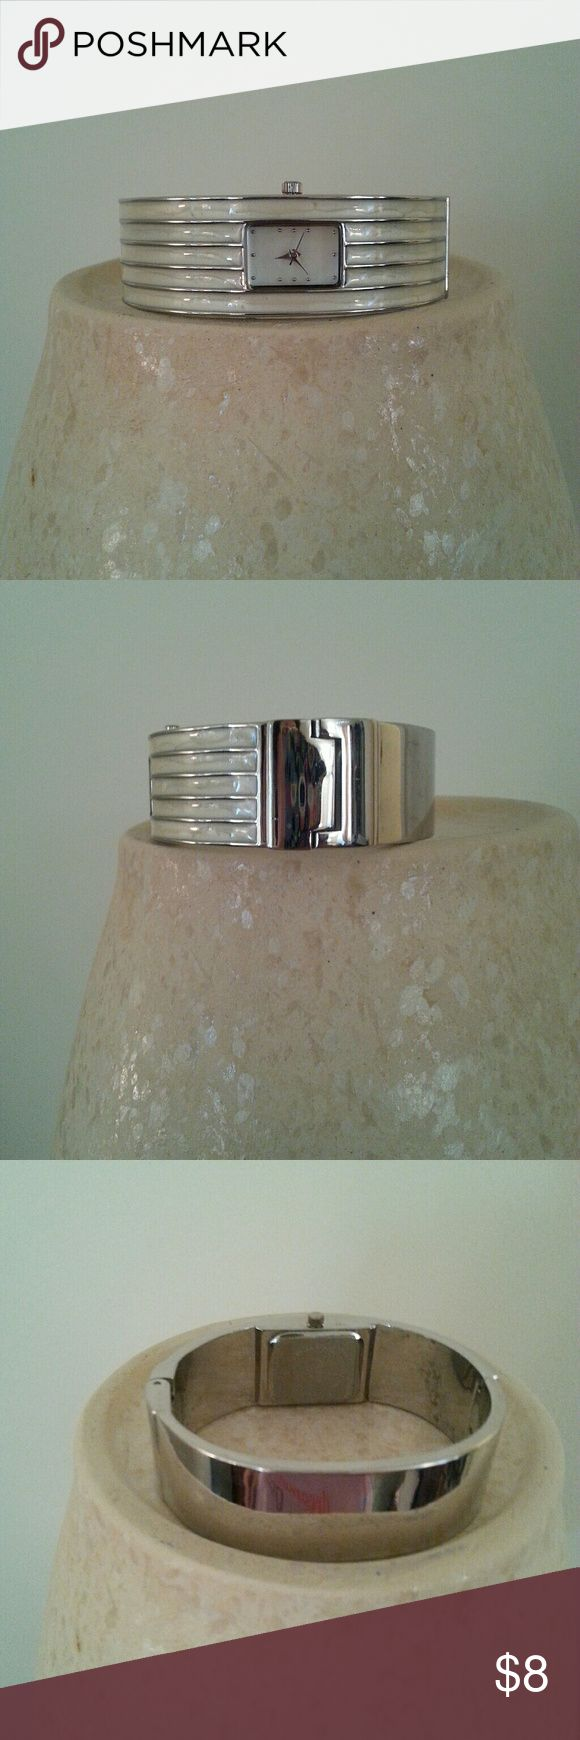 """Bangle Watch Off-white enamel, hinged cuff style, second hand, silvertone. 3/4 """" tall. Needs battery. Accessories Watches"""